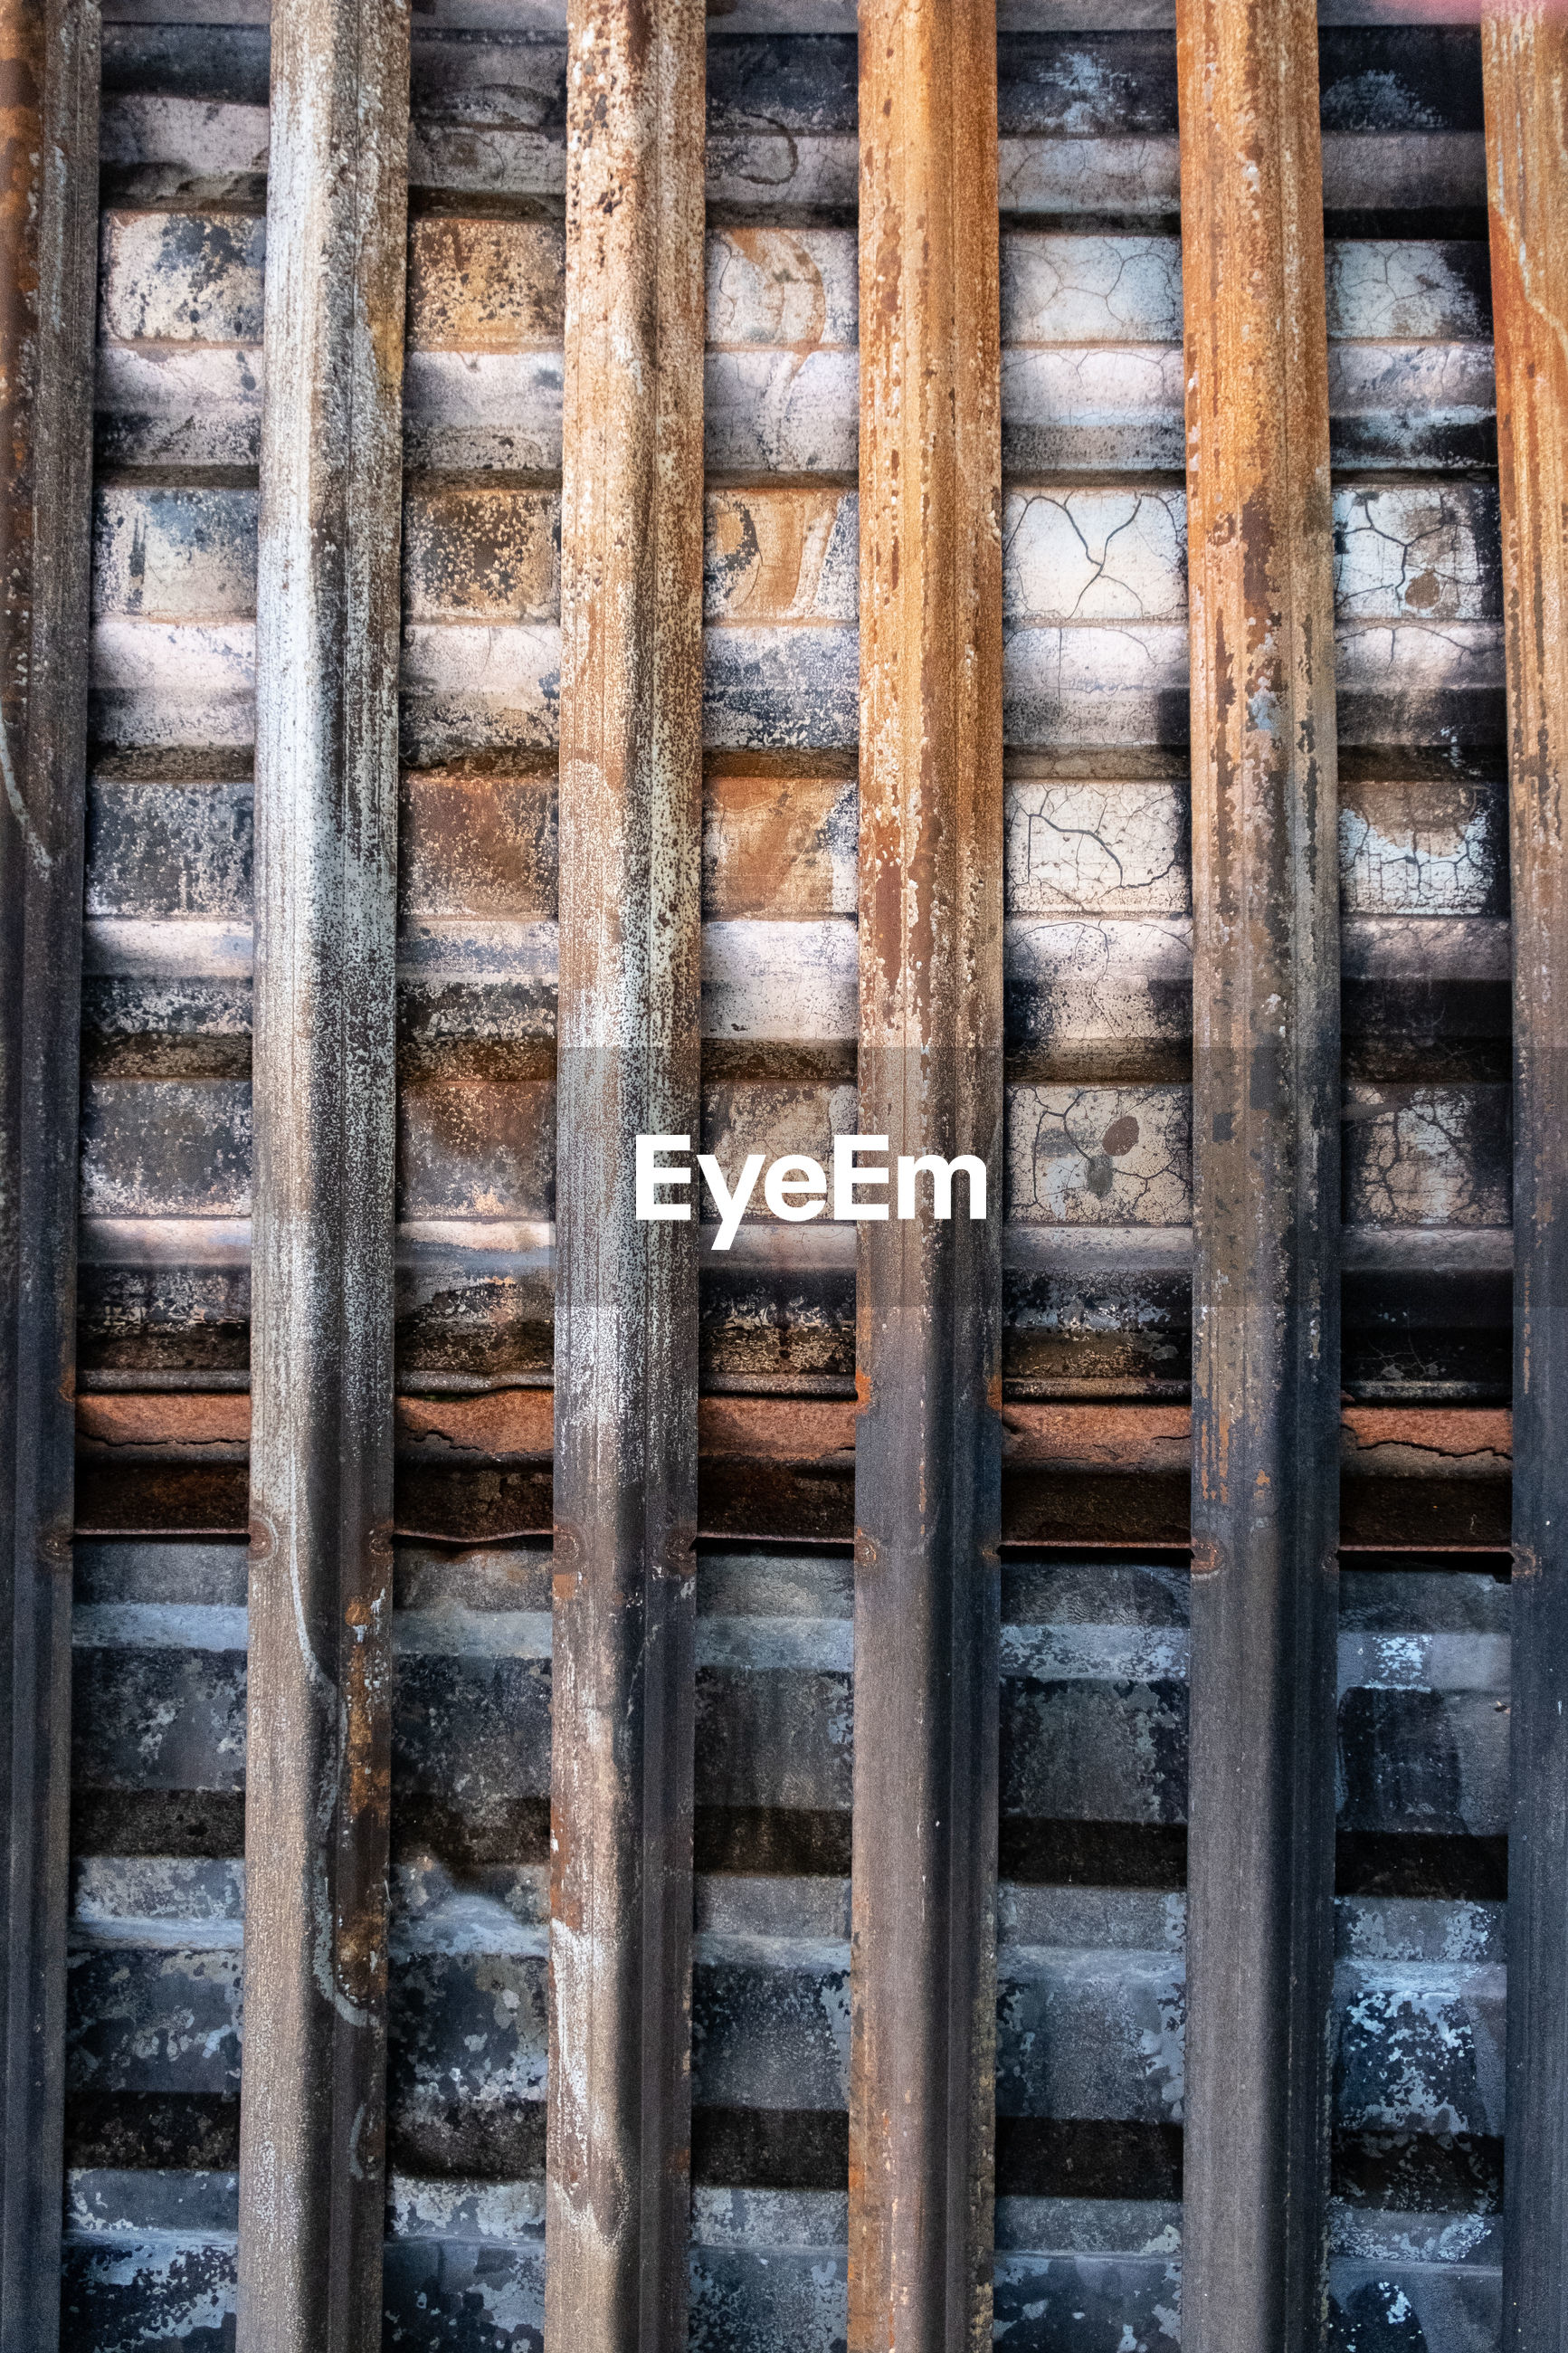 wood, iron, no people, wall, full frame, day, architecture, backgrounds, pattern, outdoors, built structure, close-up, metal, old